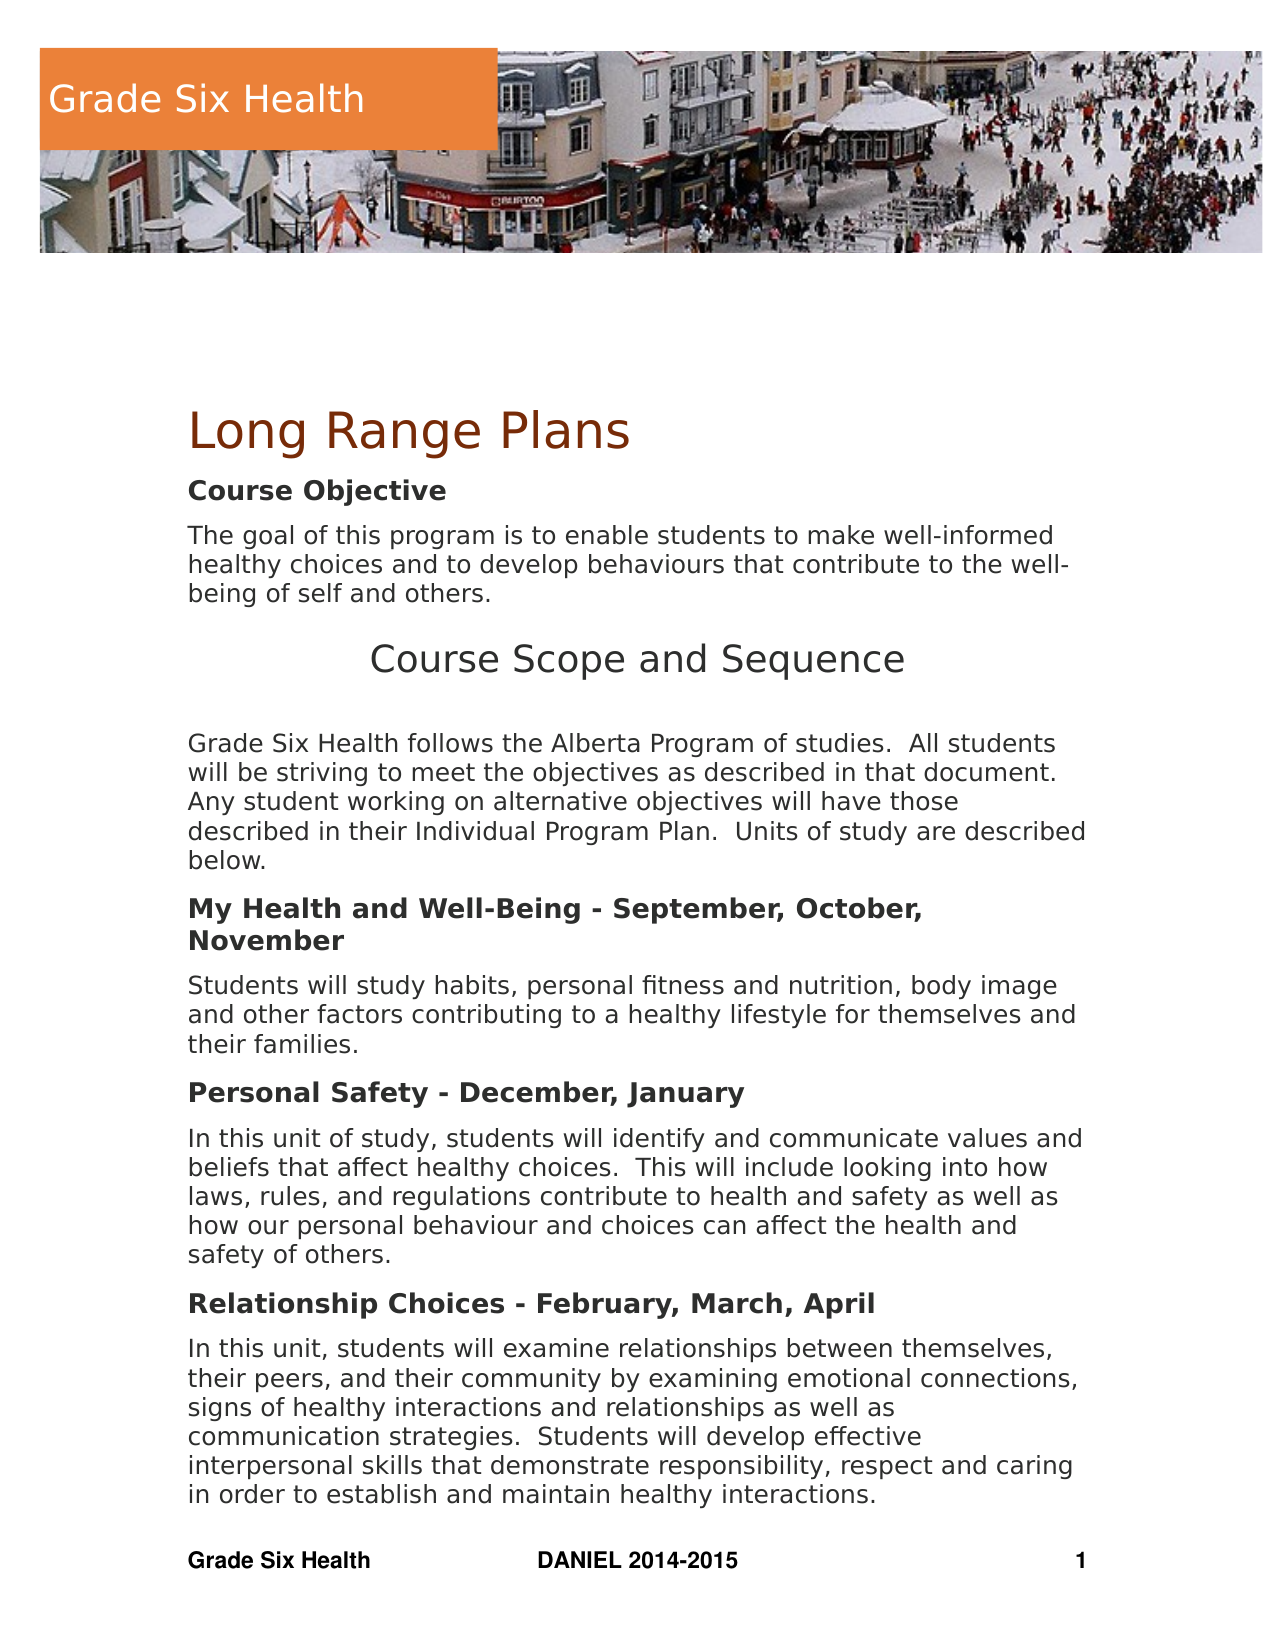 Grade 6 Health Long Range Plans Resource Preview